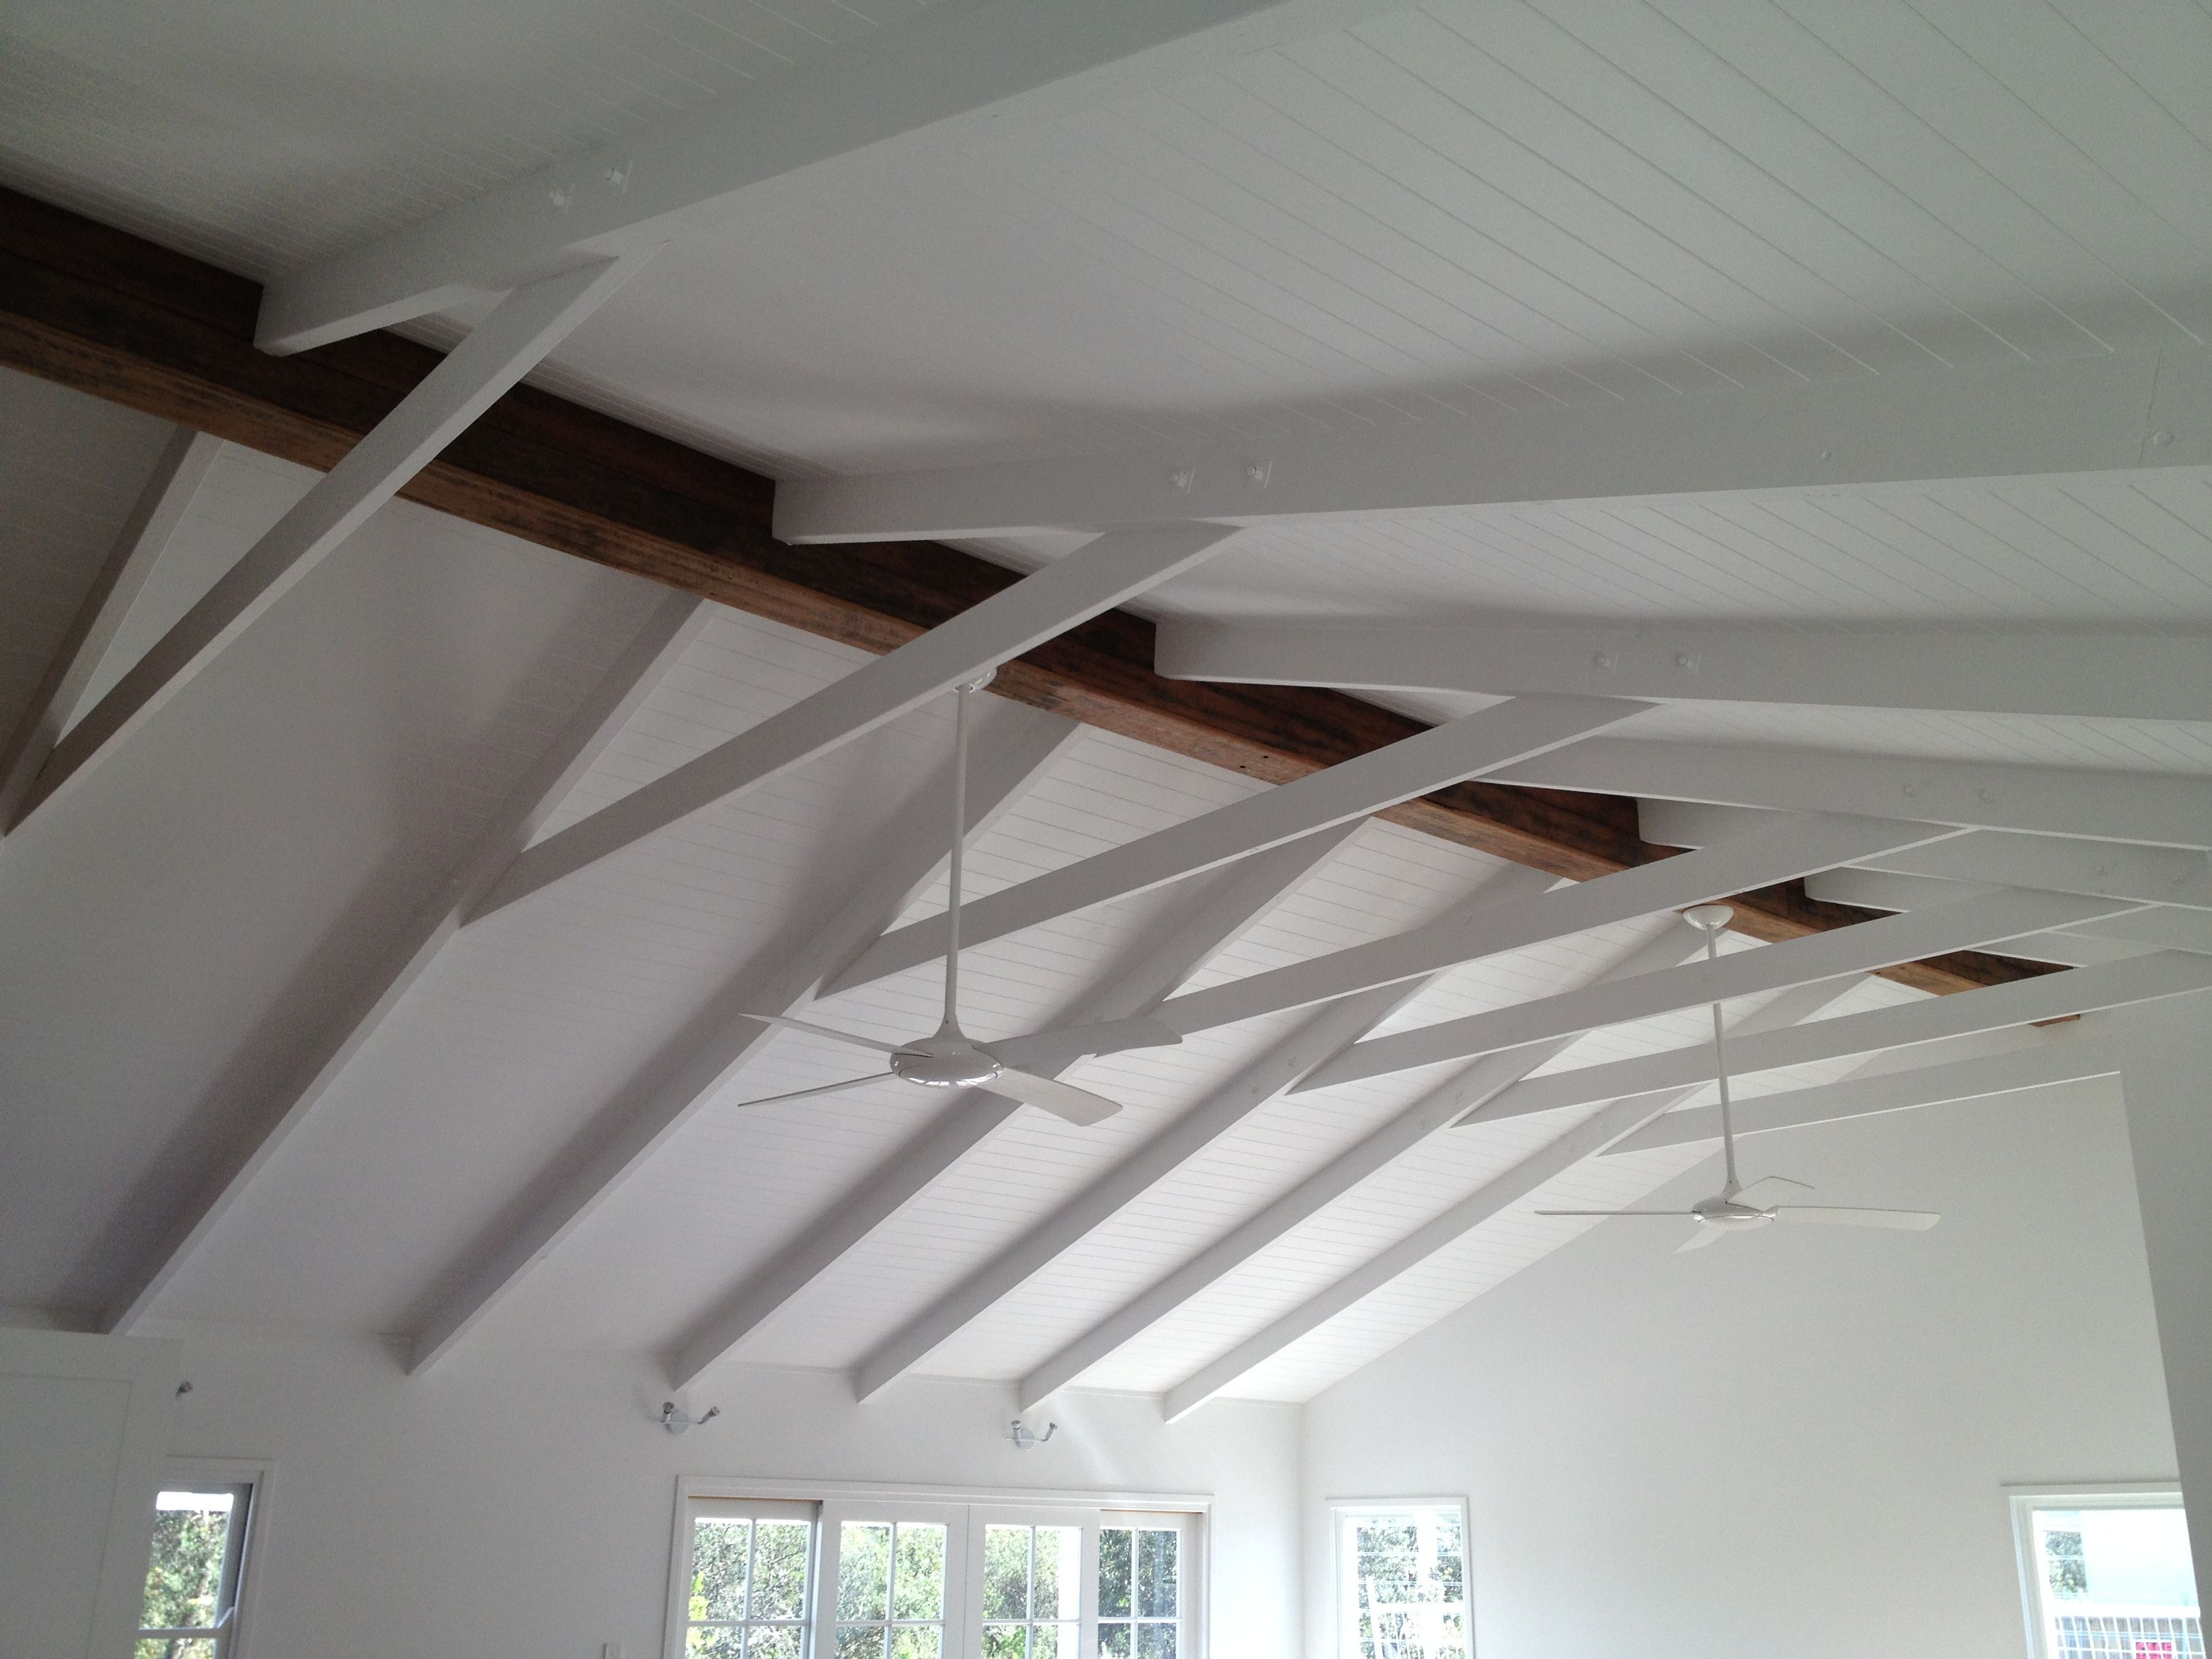 Raked Ceiling And Exposed Timber Beam But No Colar Tie